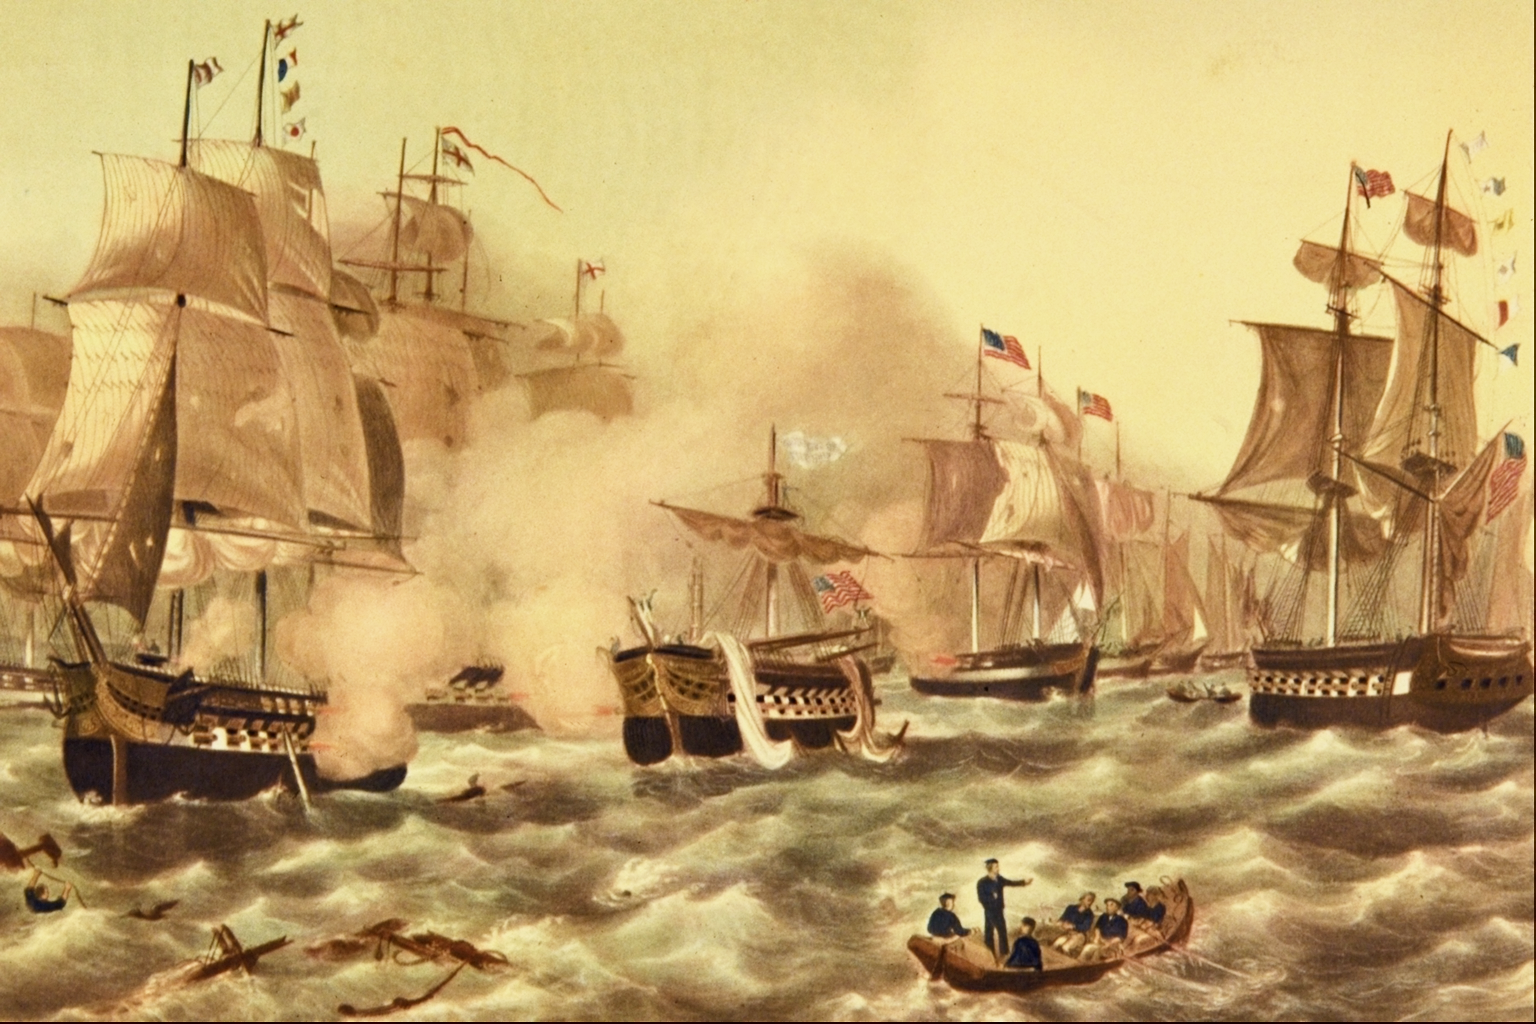 http://upload.wikimedia.org/wikipedia/commons/8/8a/The_Battle_of_Lake_Erie,_Commodore..._-_J._Perry_Newell.png